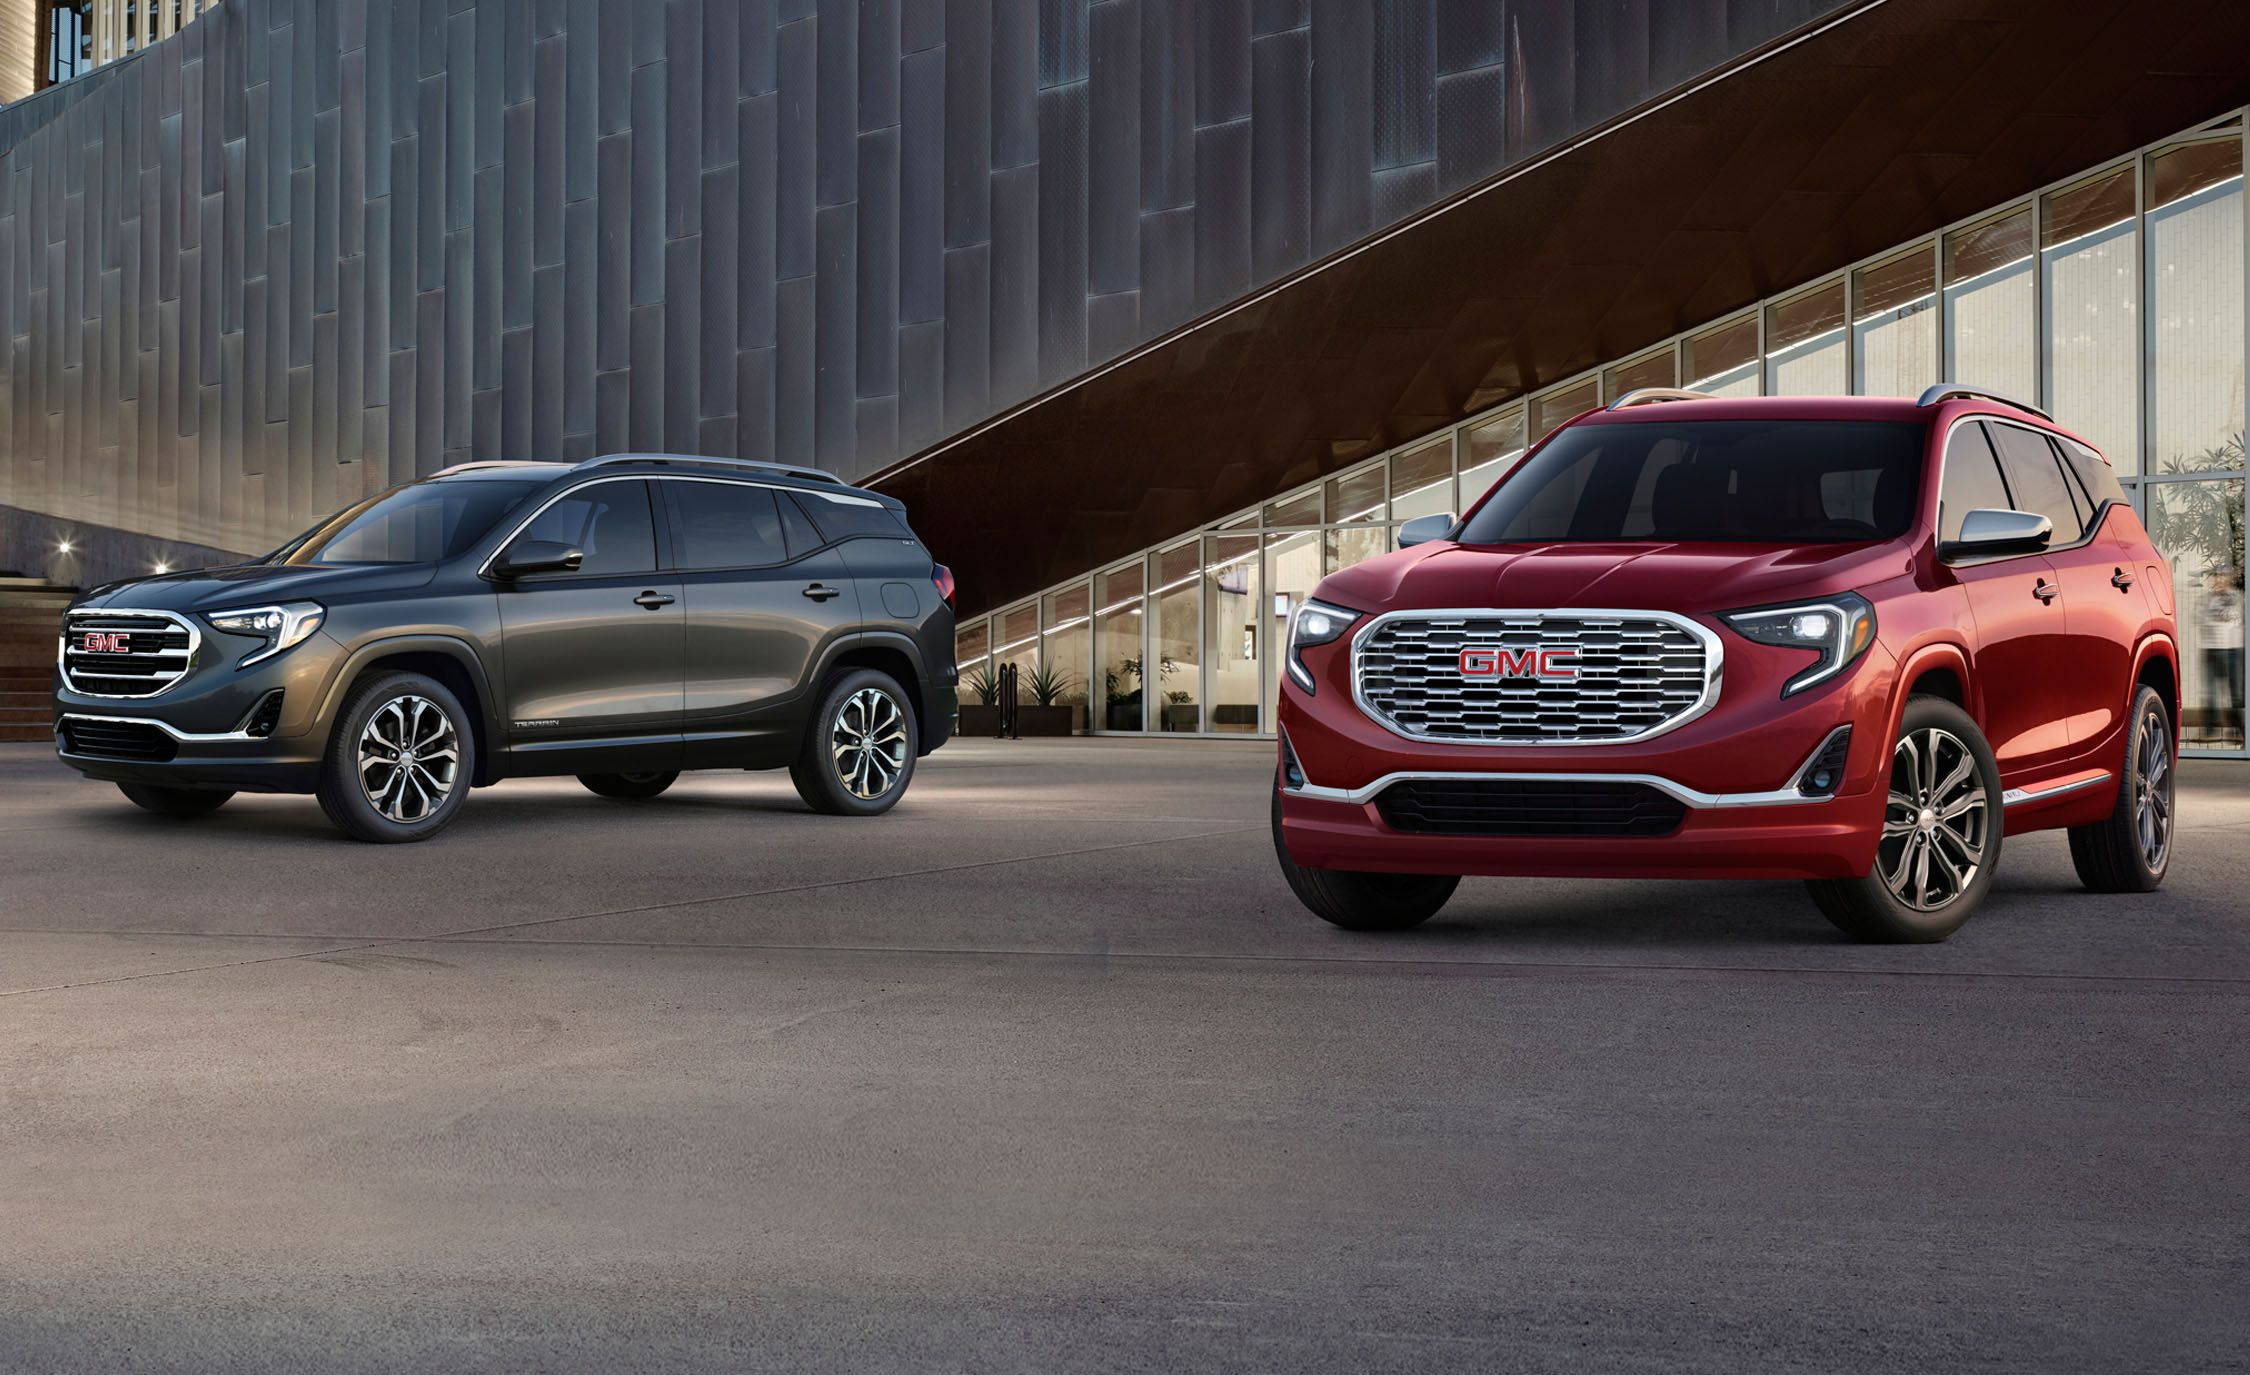 2018 Gmc Terrain First Drive Review Car And Driver